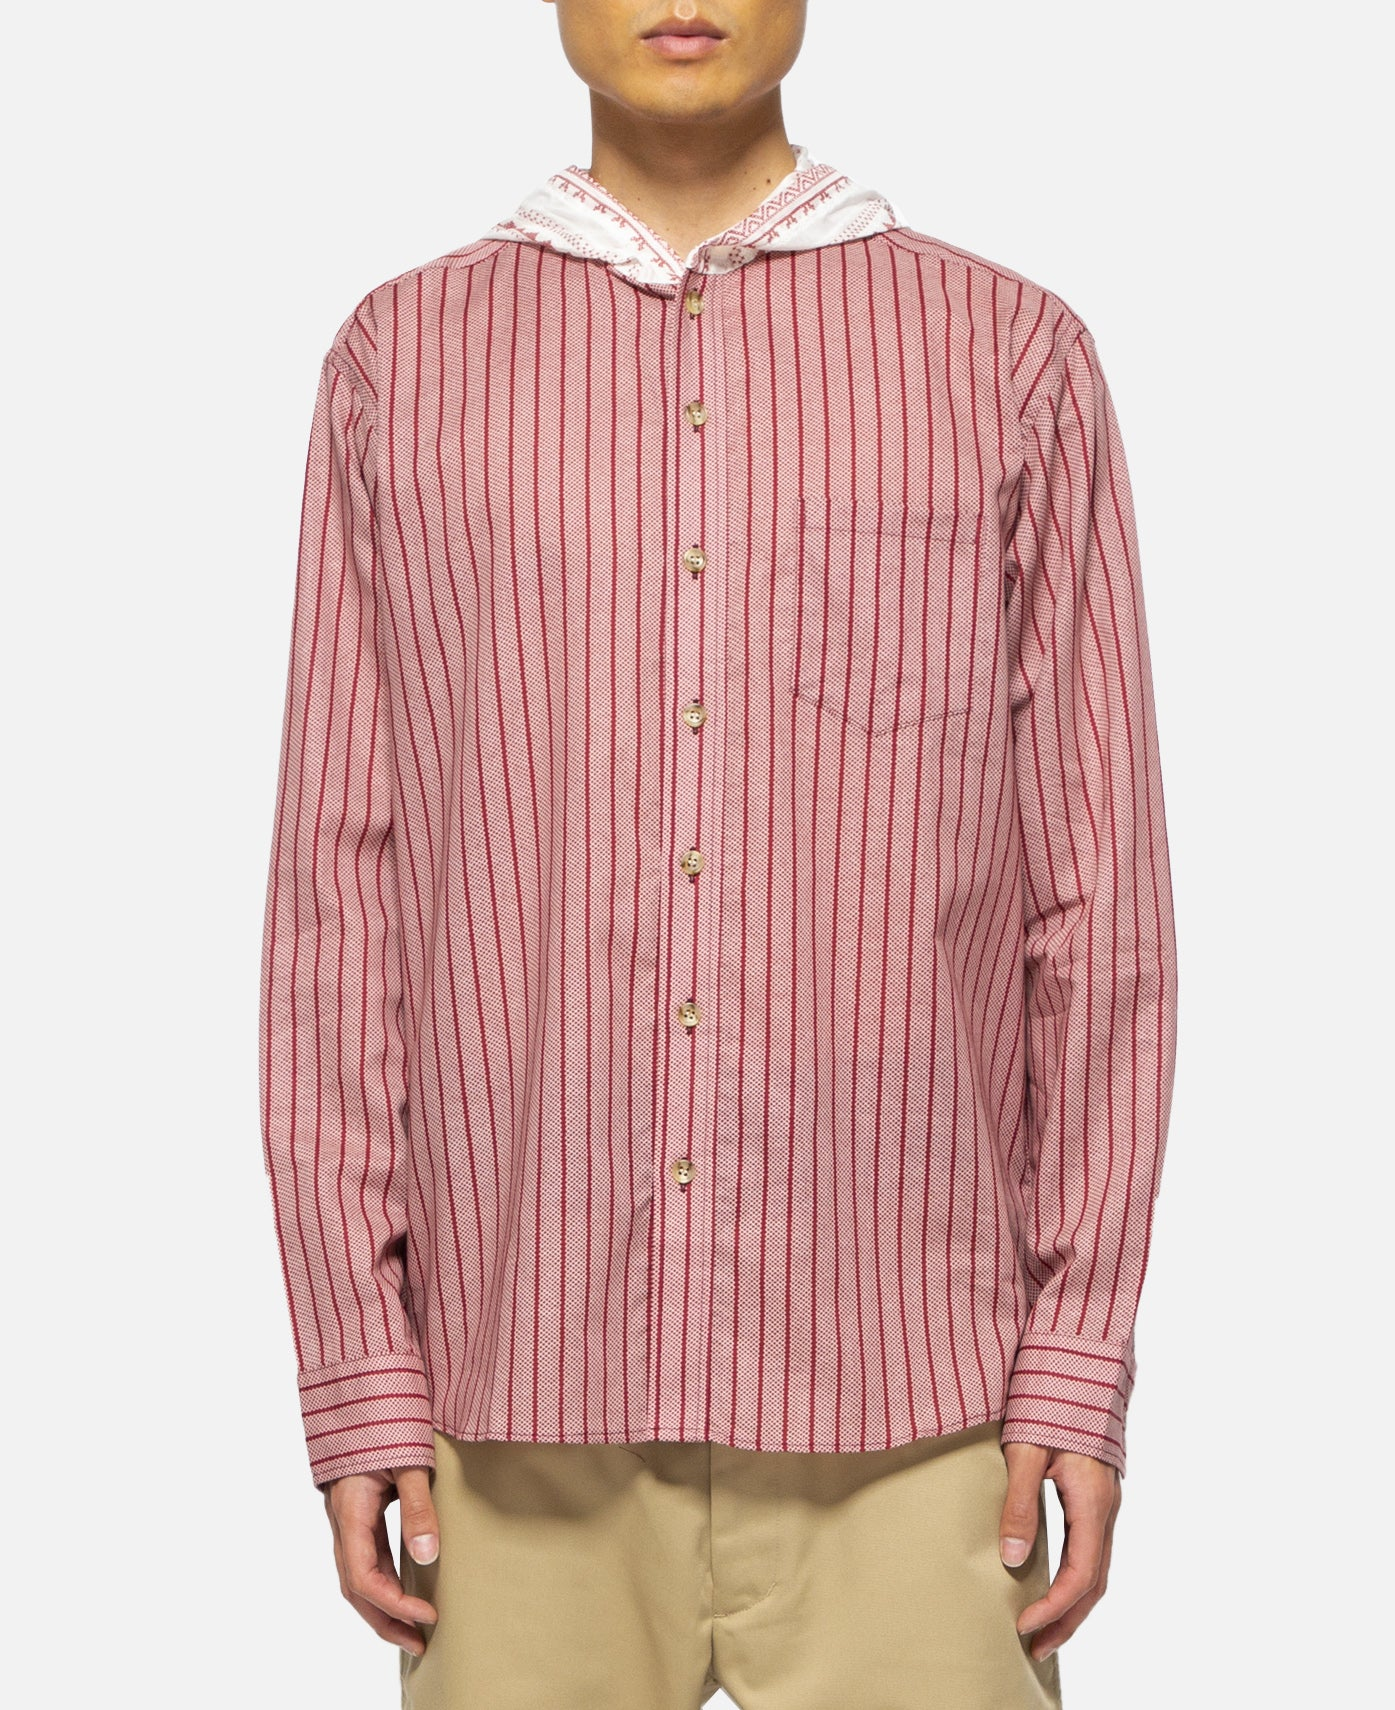 Contrast Tone Hooded L/S Shirt (Pink)